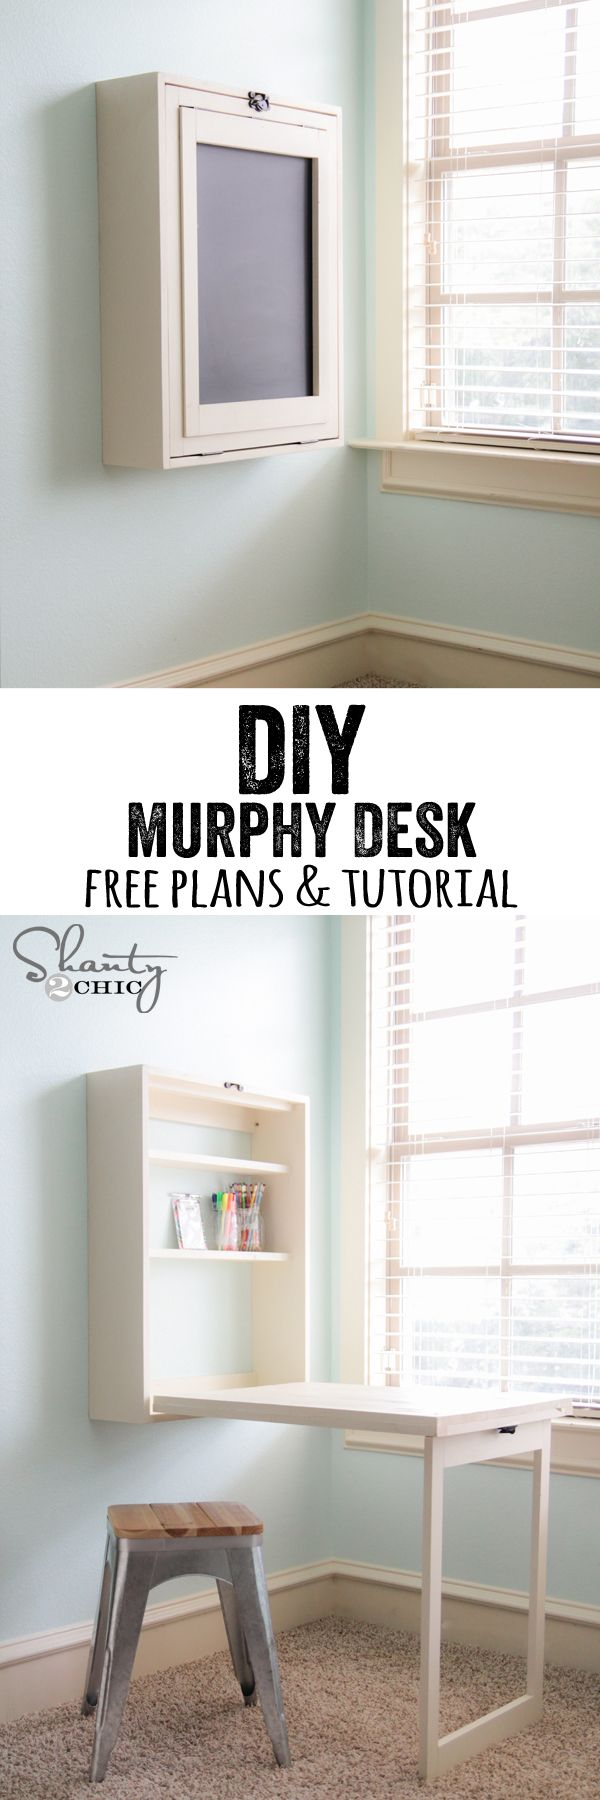 15 diy computer desks tutorials for your home office 2017 Diy work desk